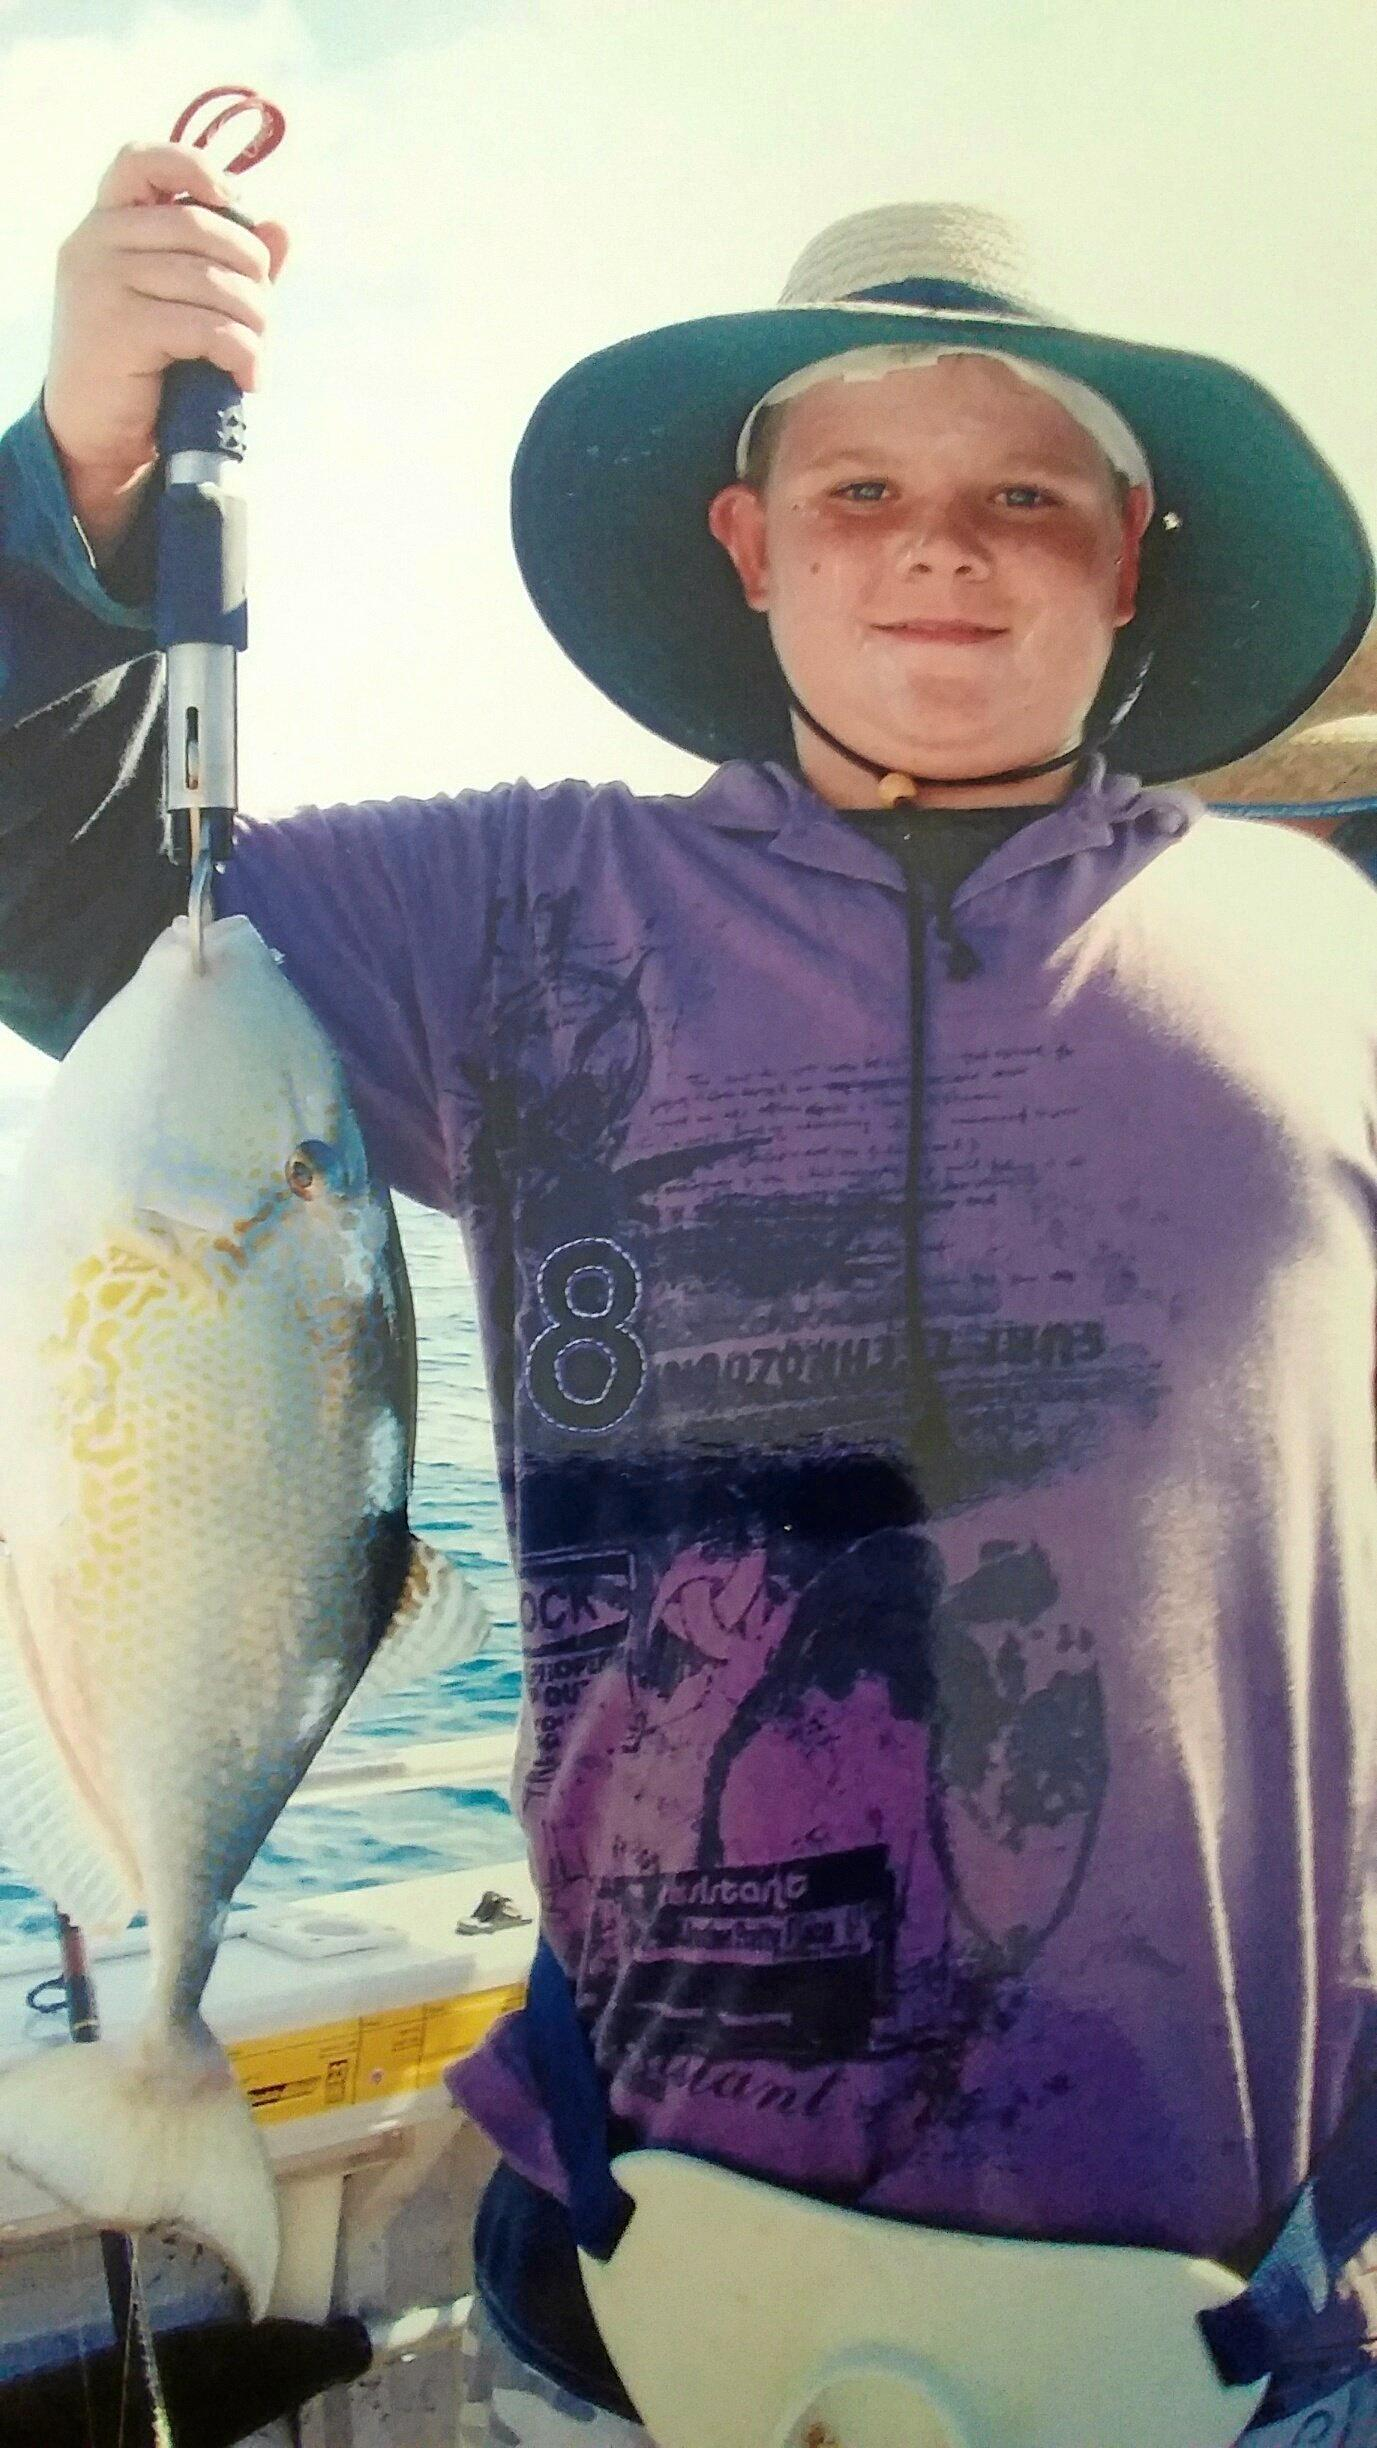 TRIGGER HAPPY: Korey McLaughlin aged 13 with his first fish (a big trigger fish) ready for release. Happy birthday Korey.